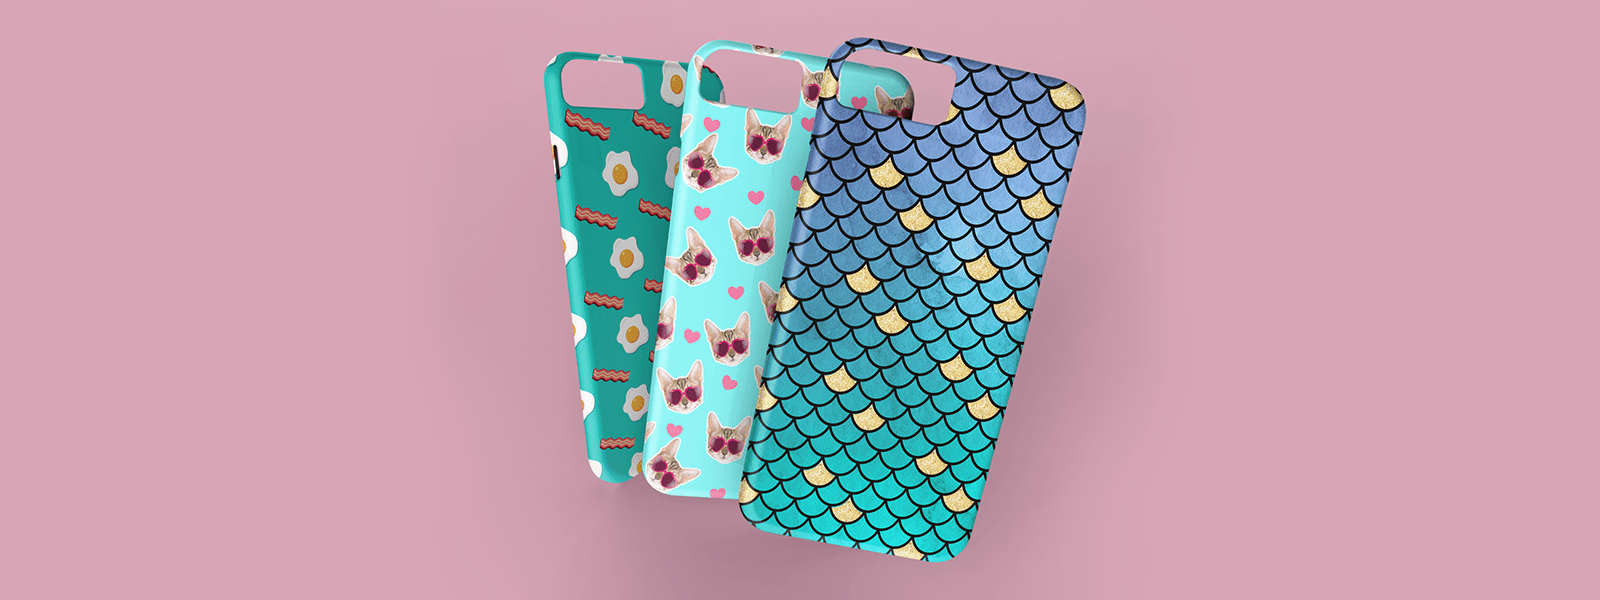 How to Pick the Best Phone Cases in 2020